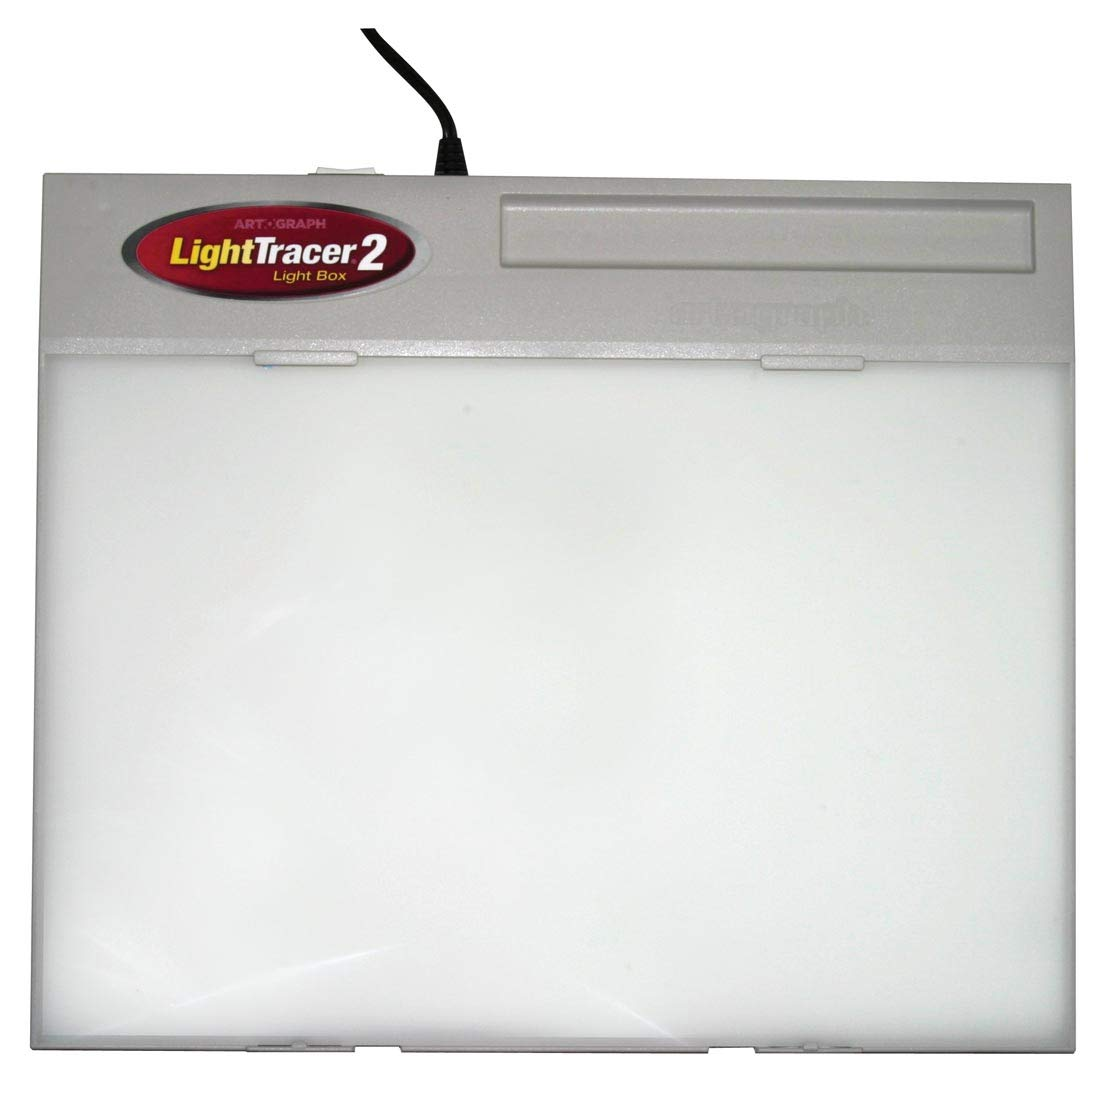 Artograph 225-375 LightTracer 2 Light Box by Artograph